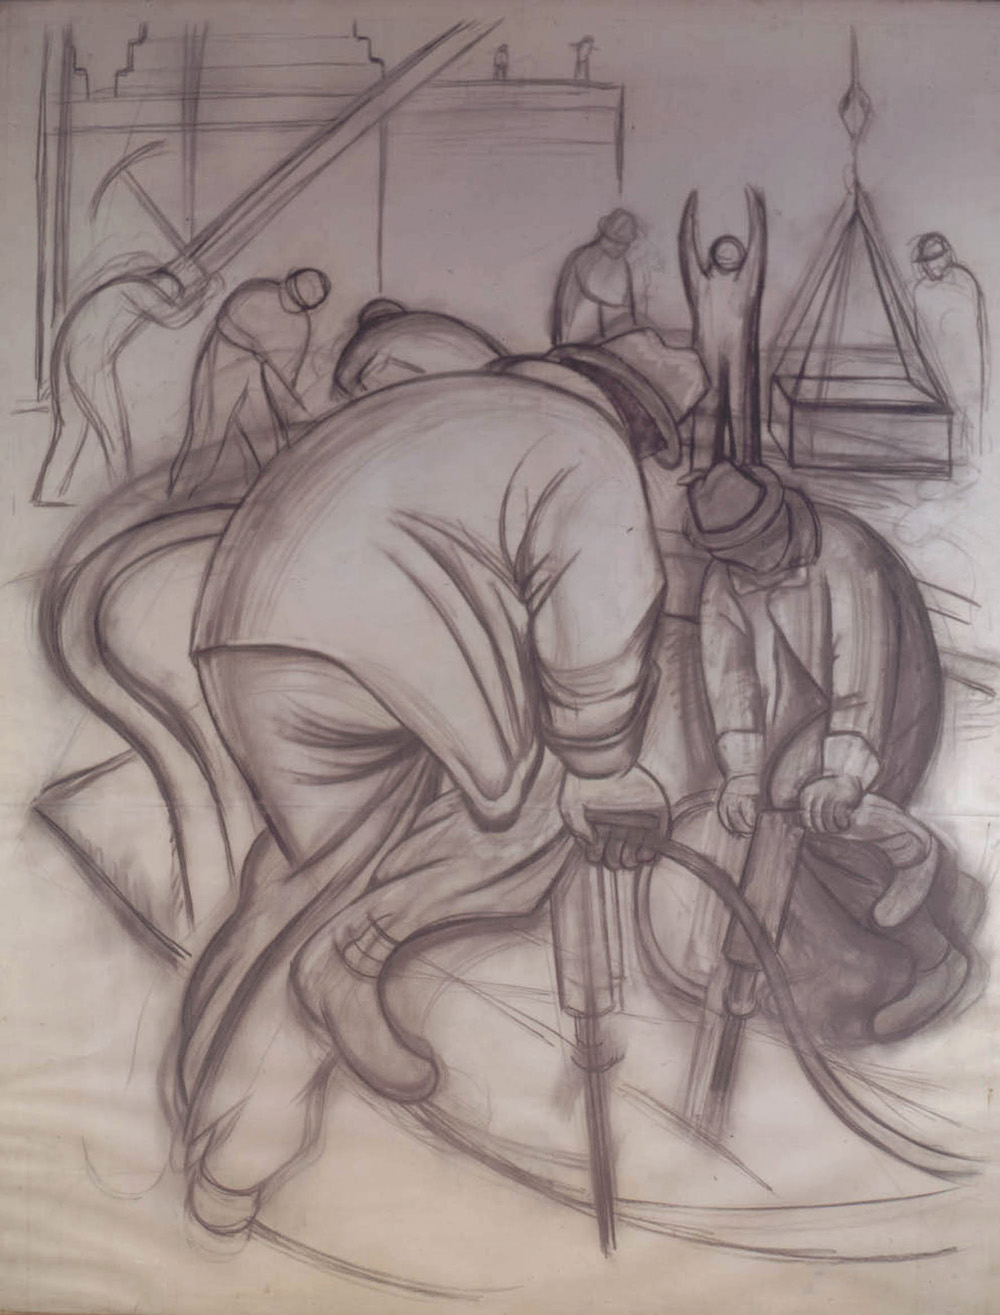 Diego Rivera. Pneumatic Drill (cartoon for Pneumatic Drilling). 1931. Charcoal on paper, 97 1/4x 76 7/8 (247 x 195.2 cm). Museo Dolores Olmedo, Xochimilco, Mexico © 2011 Banco de México Diego Rivera & Frida Kahlo Museums Trust, México, D.F./Artists Rights Society (ARS), New York